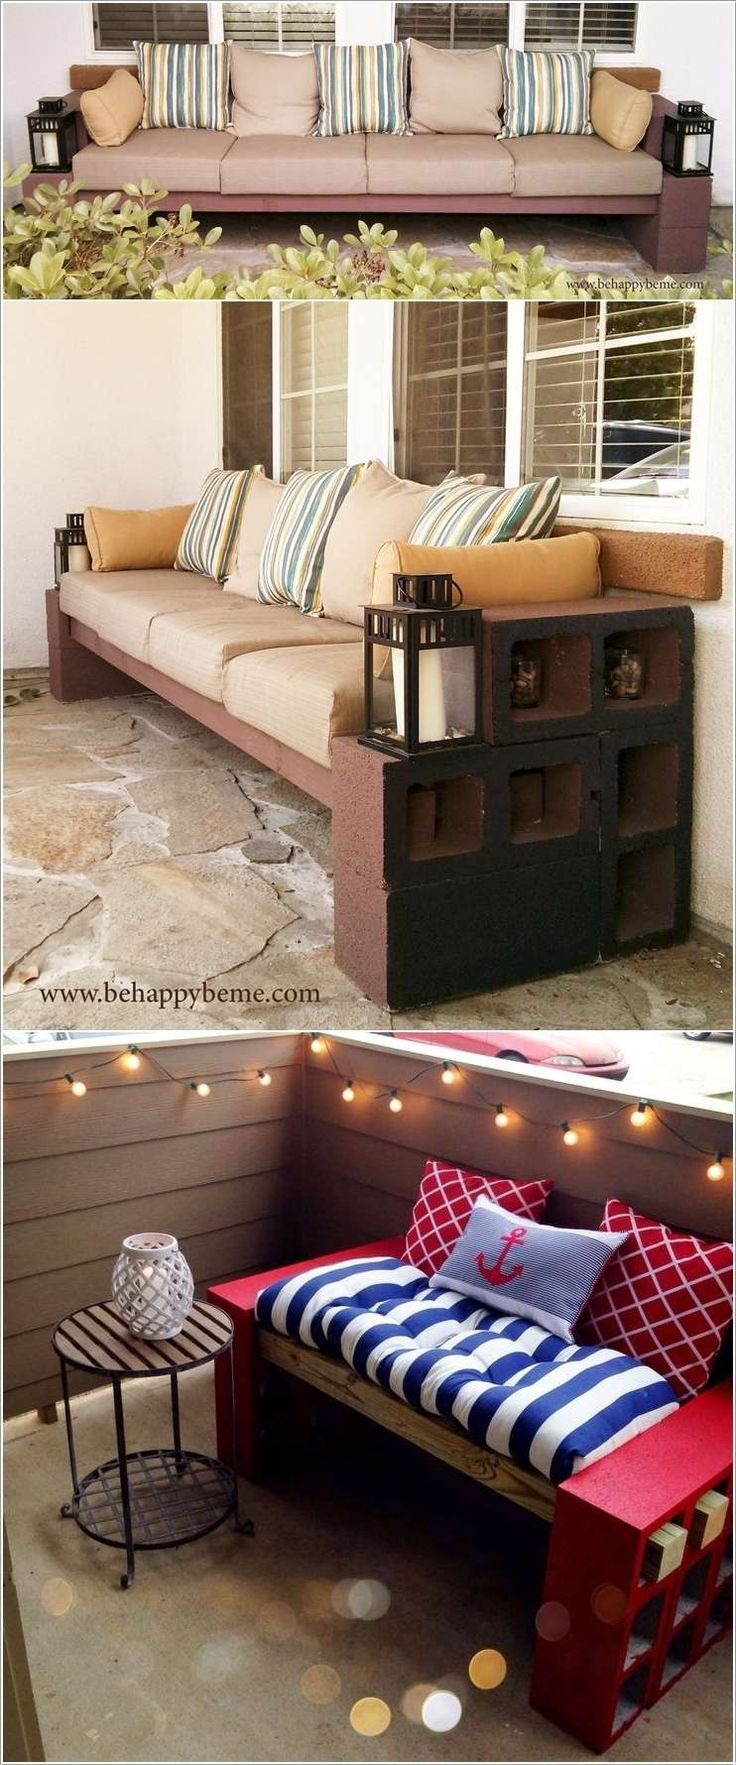 Diy Cinder Block Bench Idea Patio Home Decor